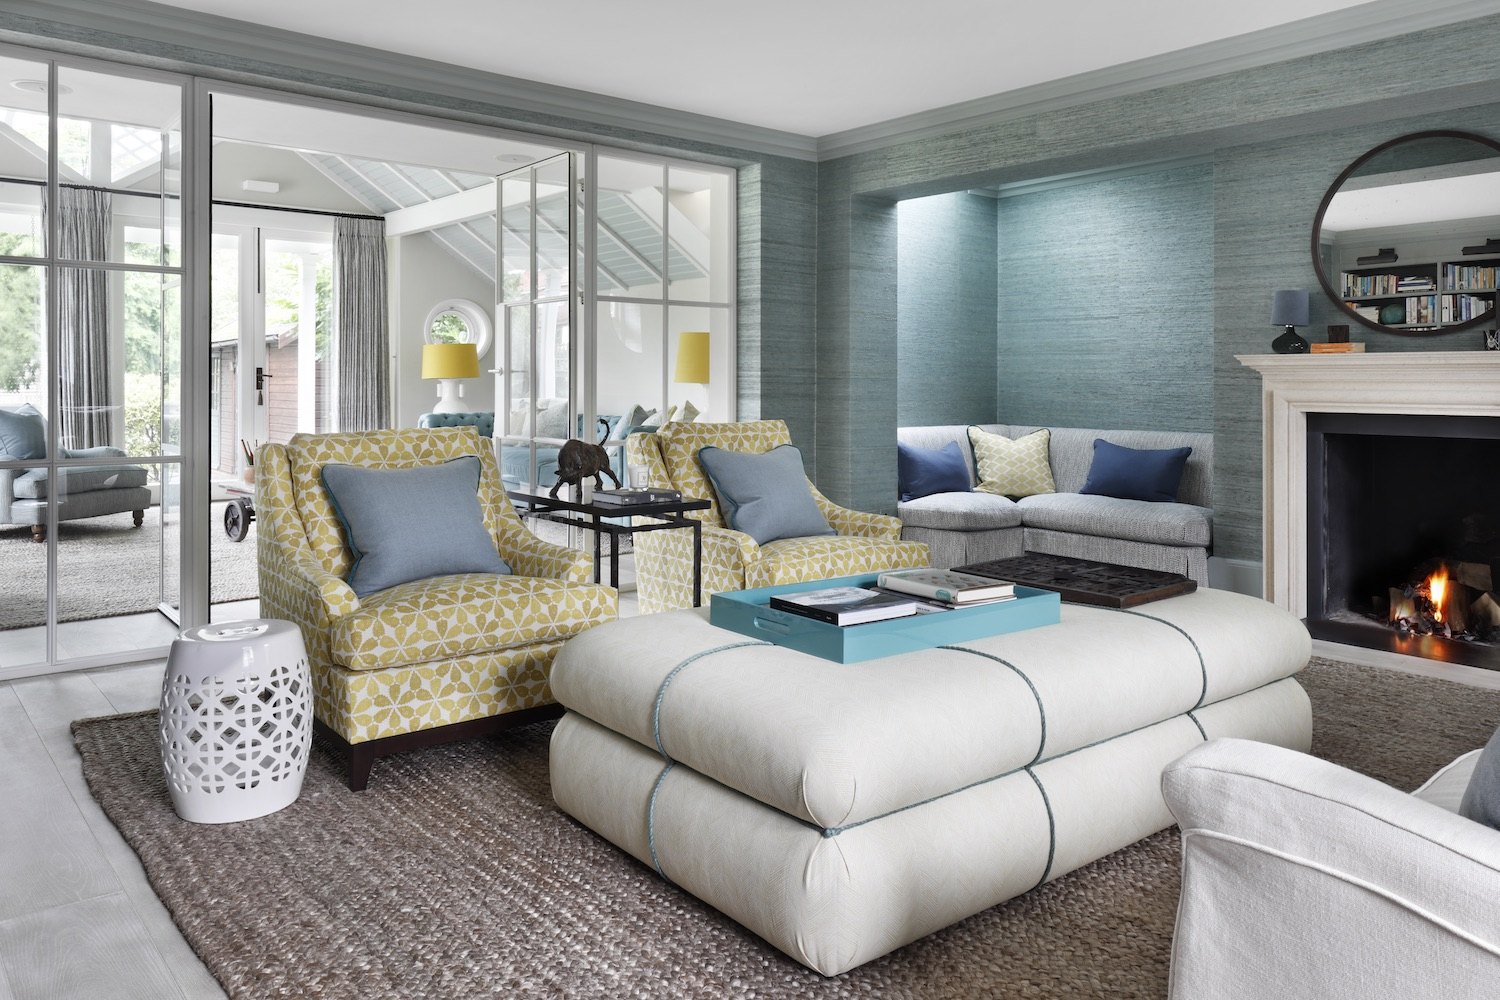 Want to know exactly how to hire and work with an interior designer? We've spoken to the experts and put together a handy guide below.